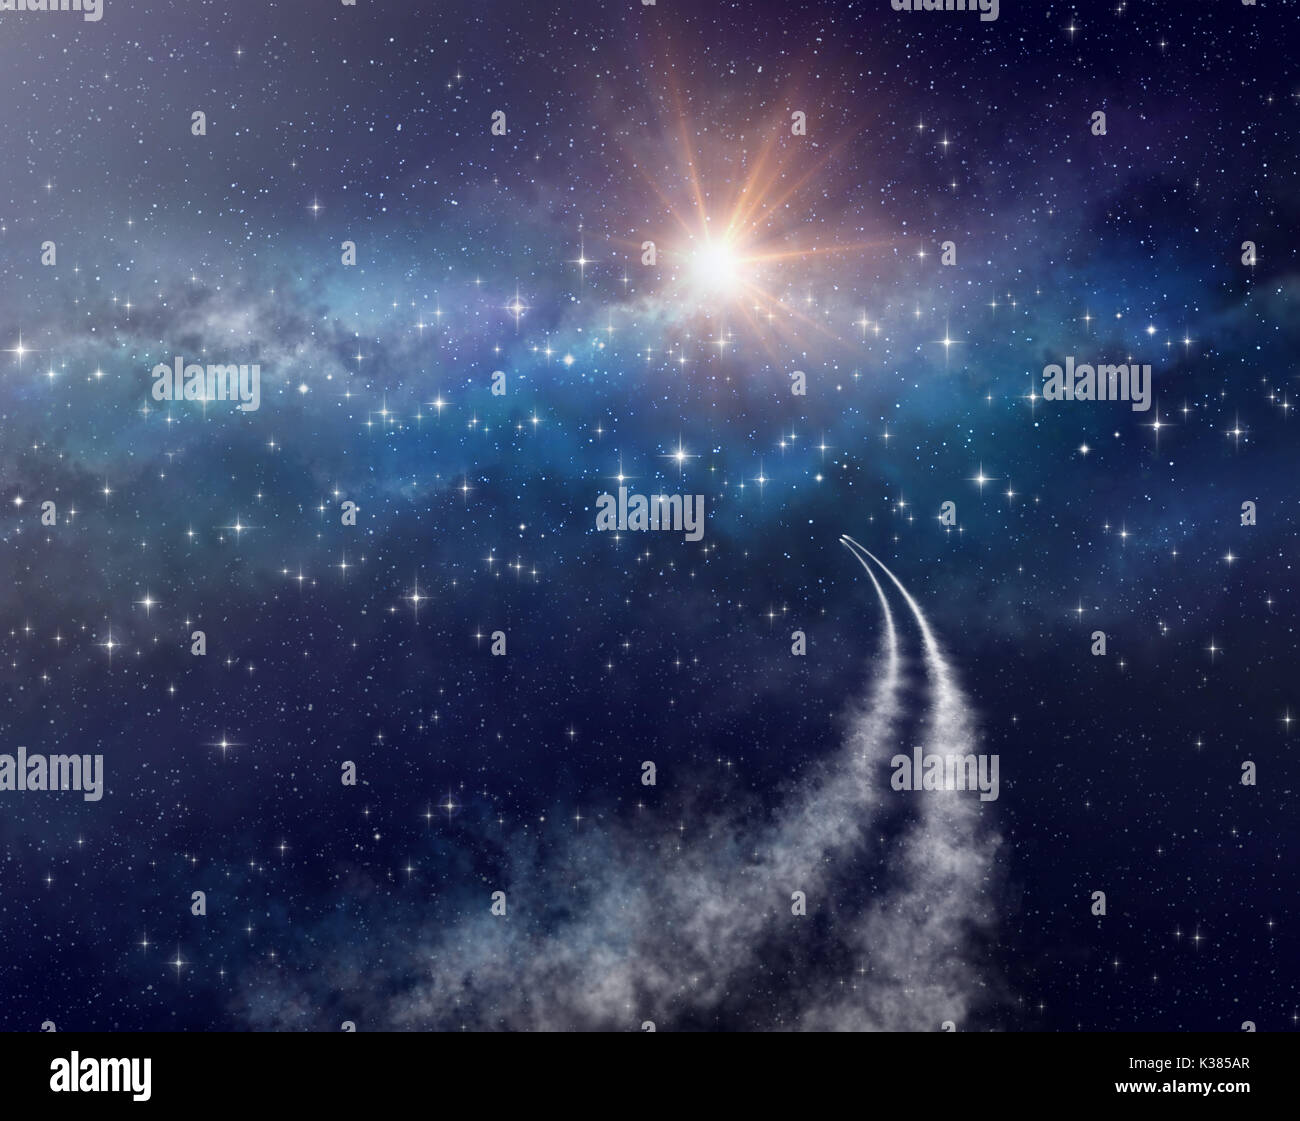 Spaceships exploring deep space, towards a star cluster. - Stock Image